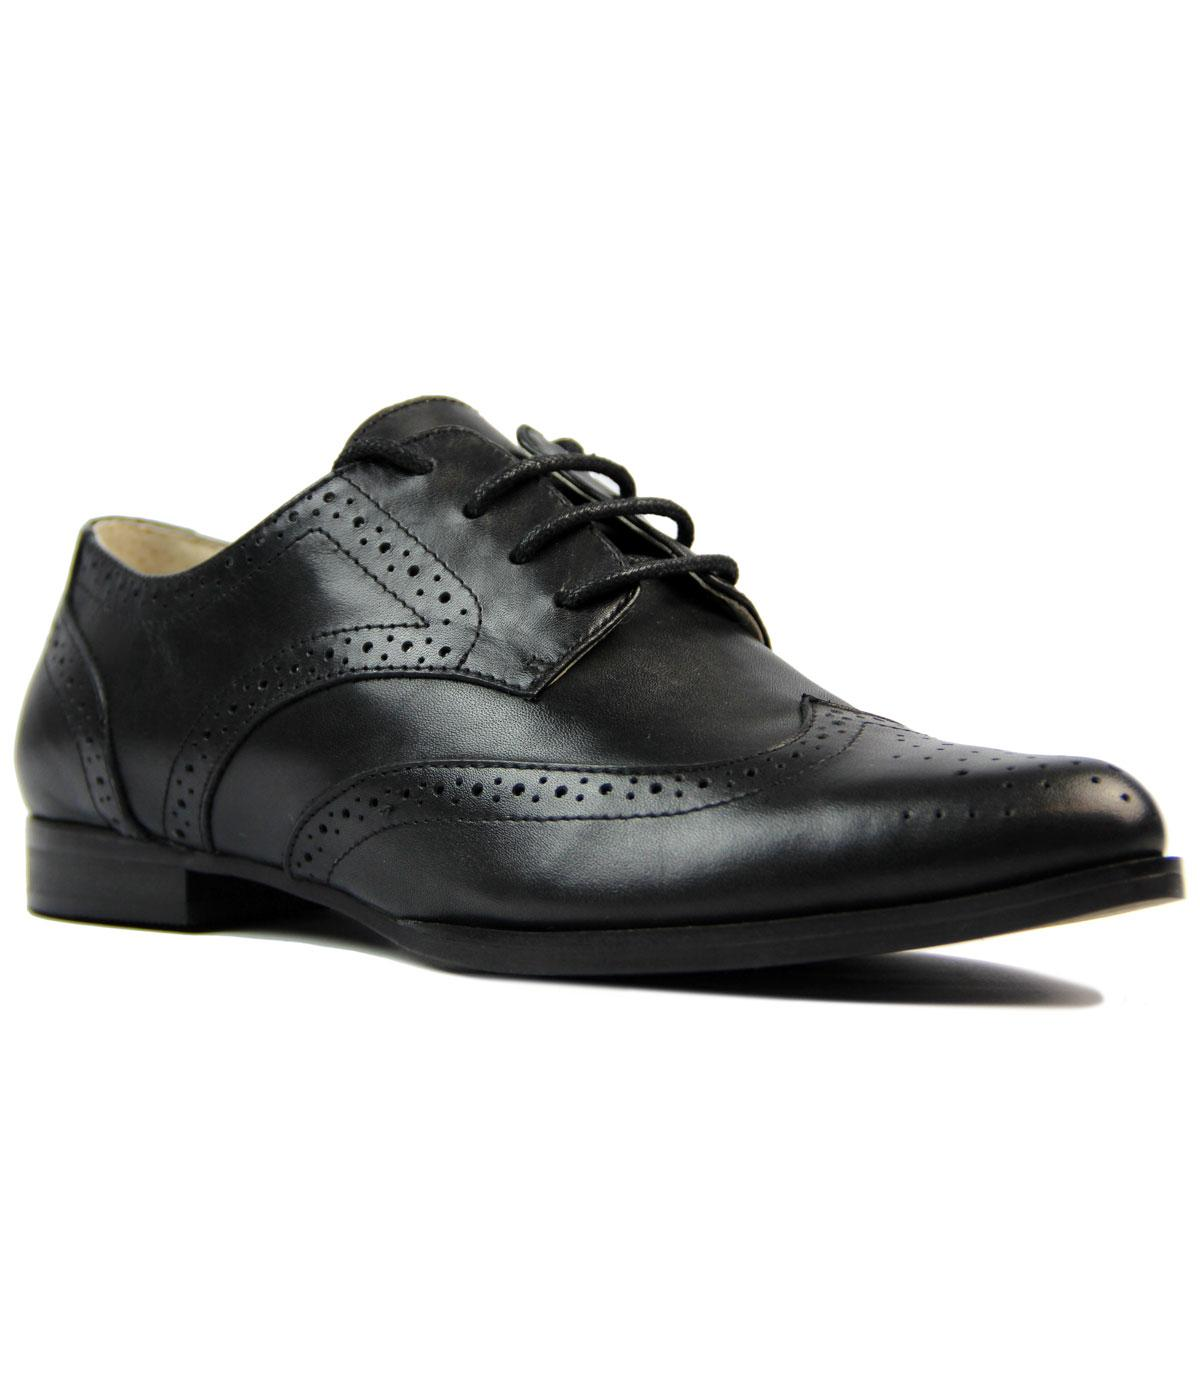 Parthina LACEYS Retro 60s Mod Winklepicker Brogues